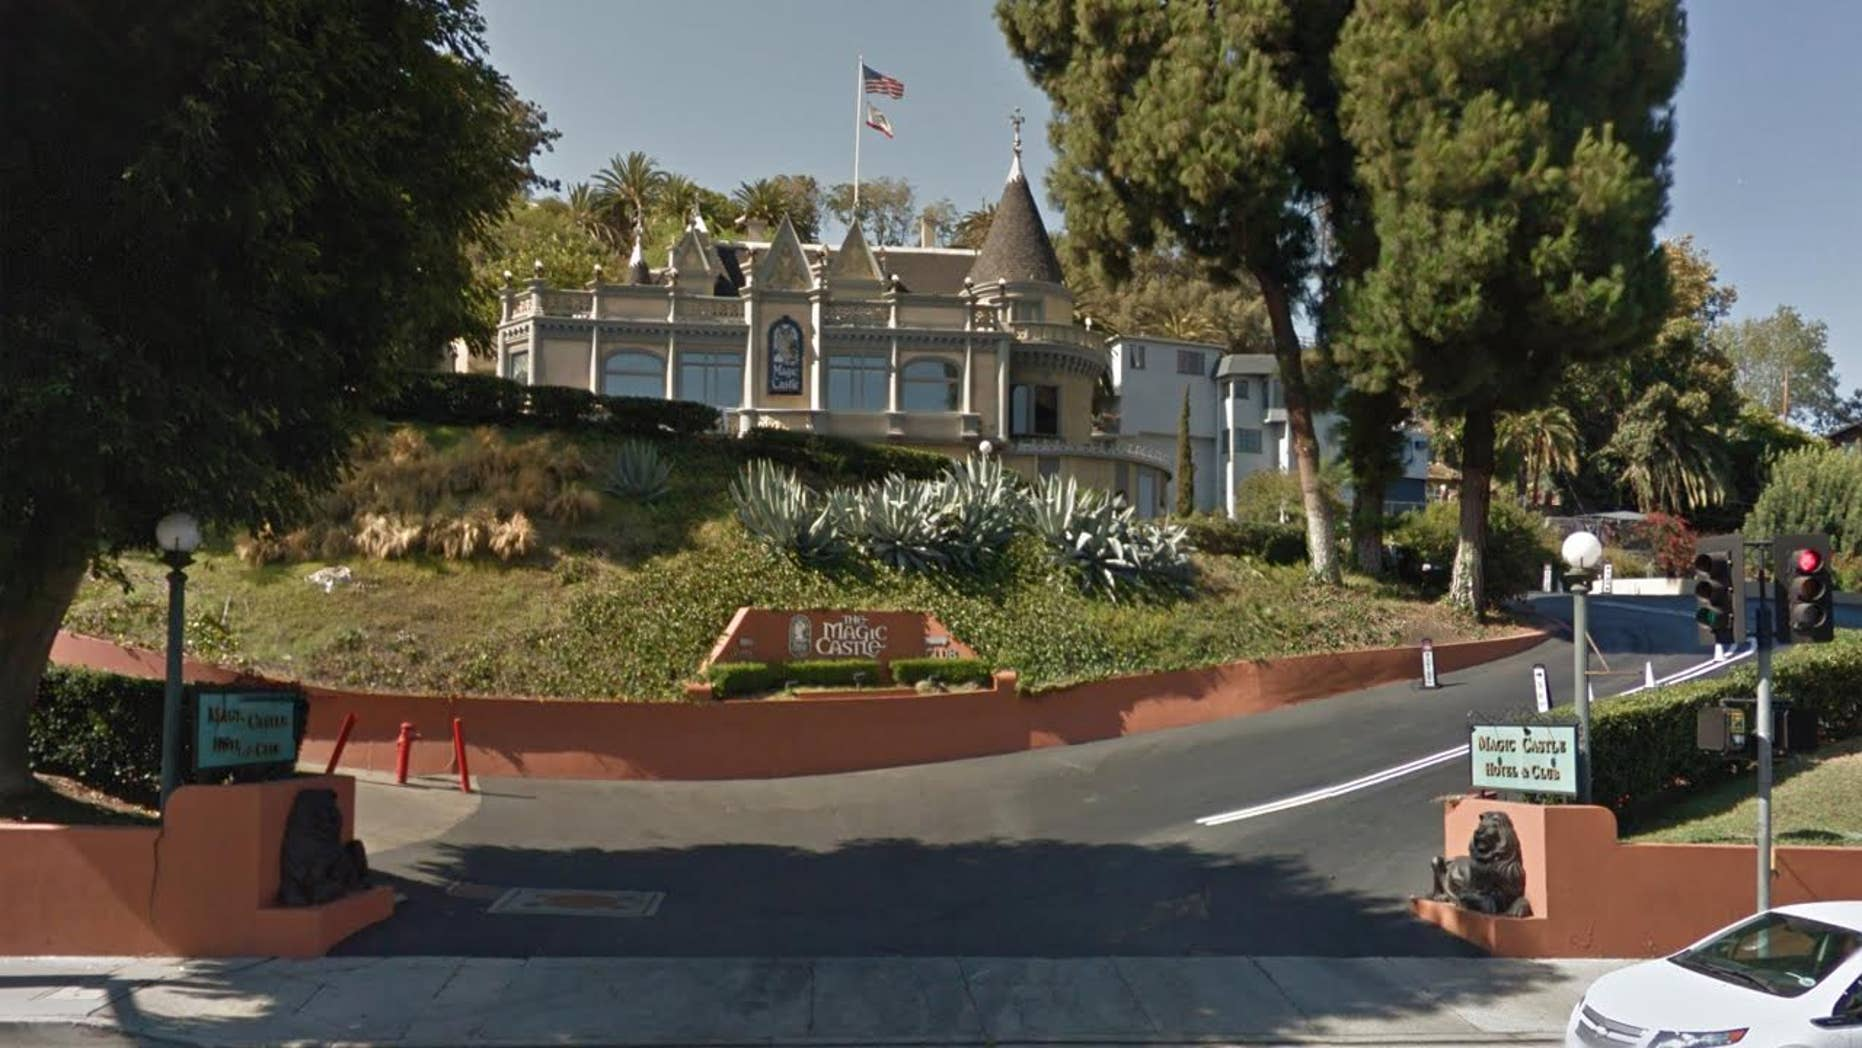 Exterior of Hollywood's Magic Castle where magician Daryl Easton accidentally hanged himself.